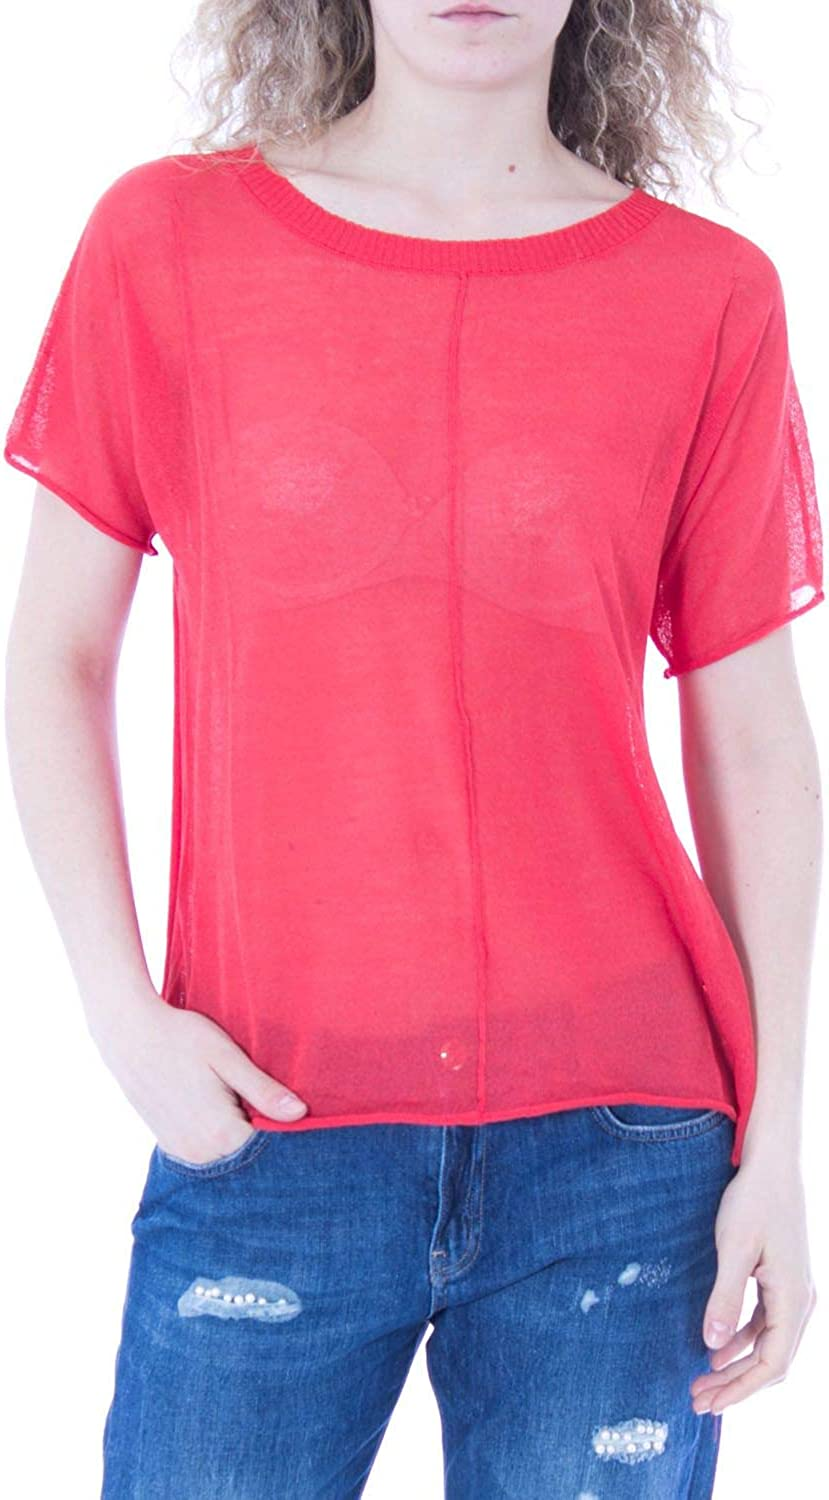 Gaudì Women's 73FD50201RED Red Polyester TShirt